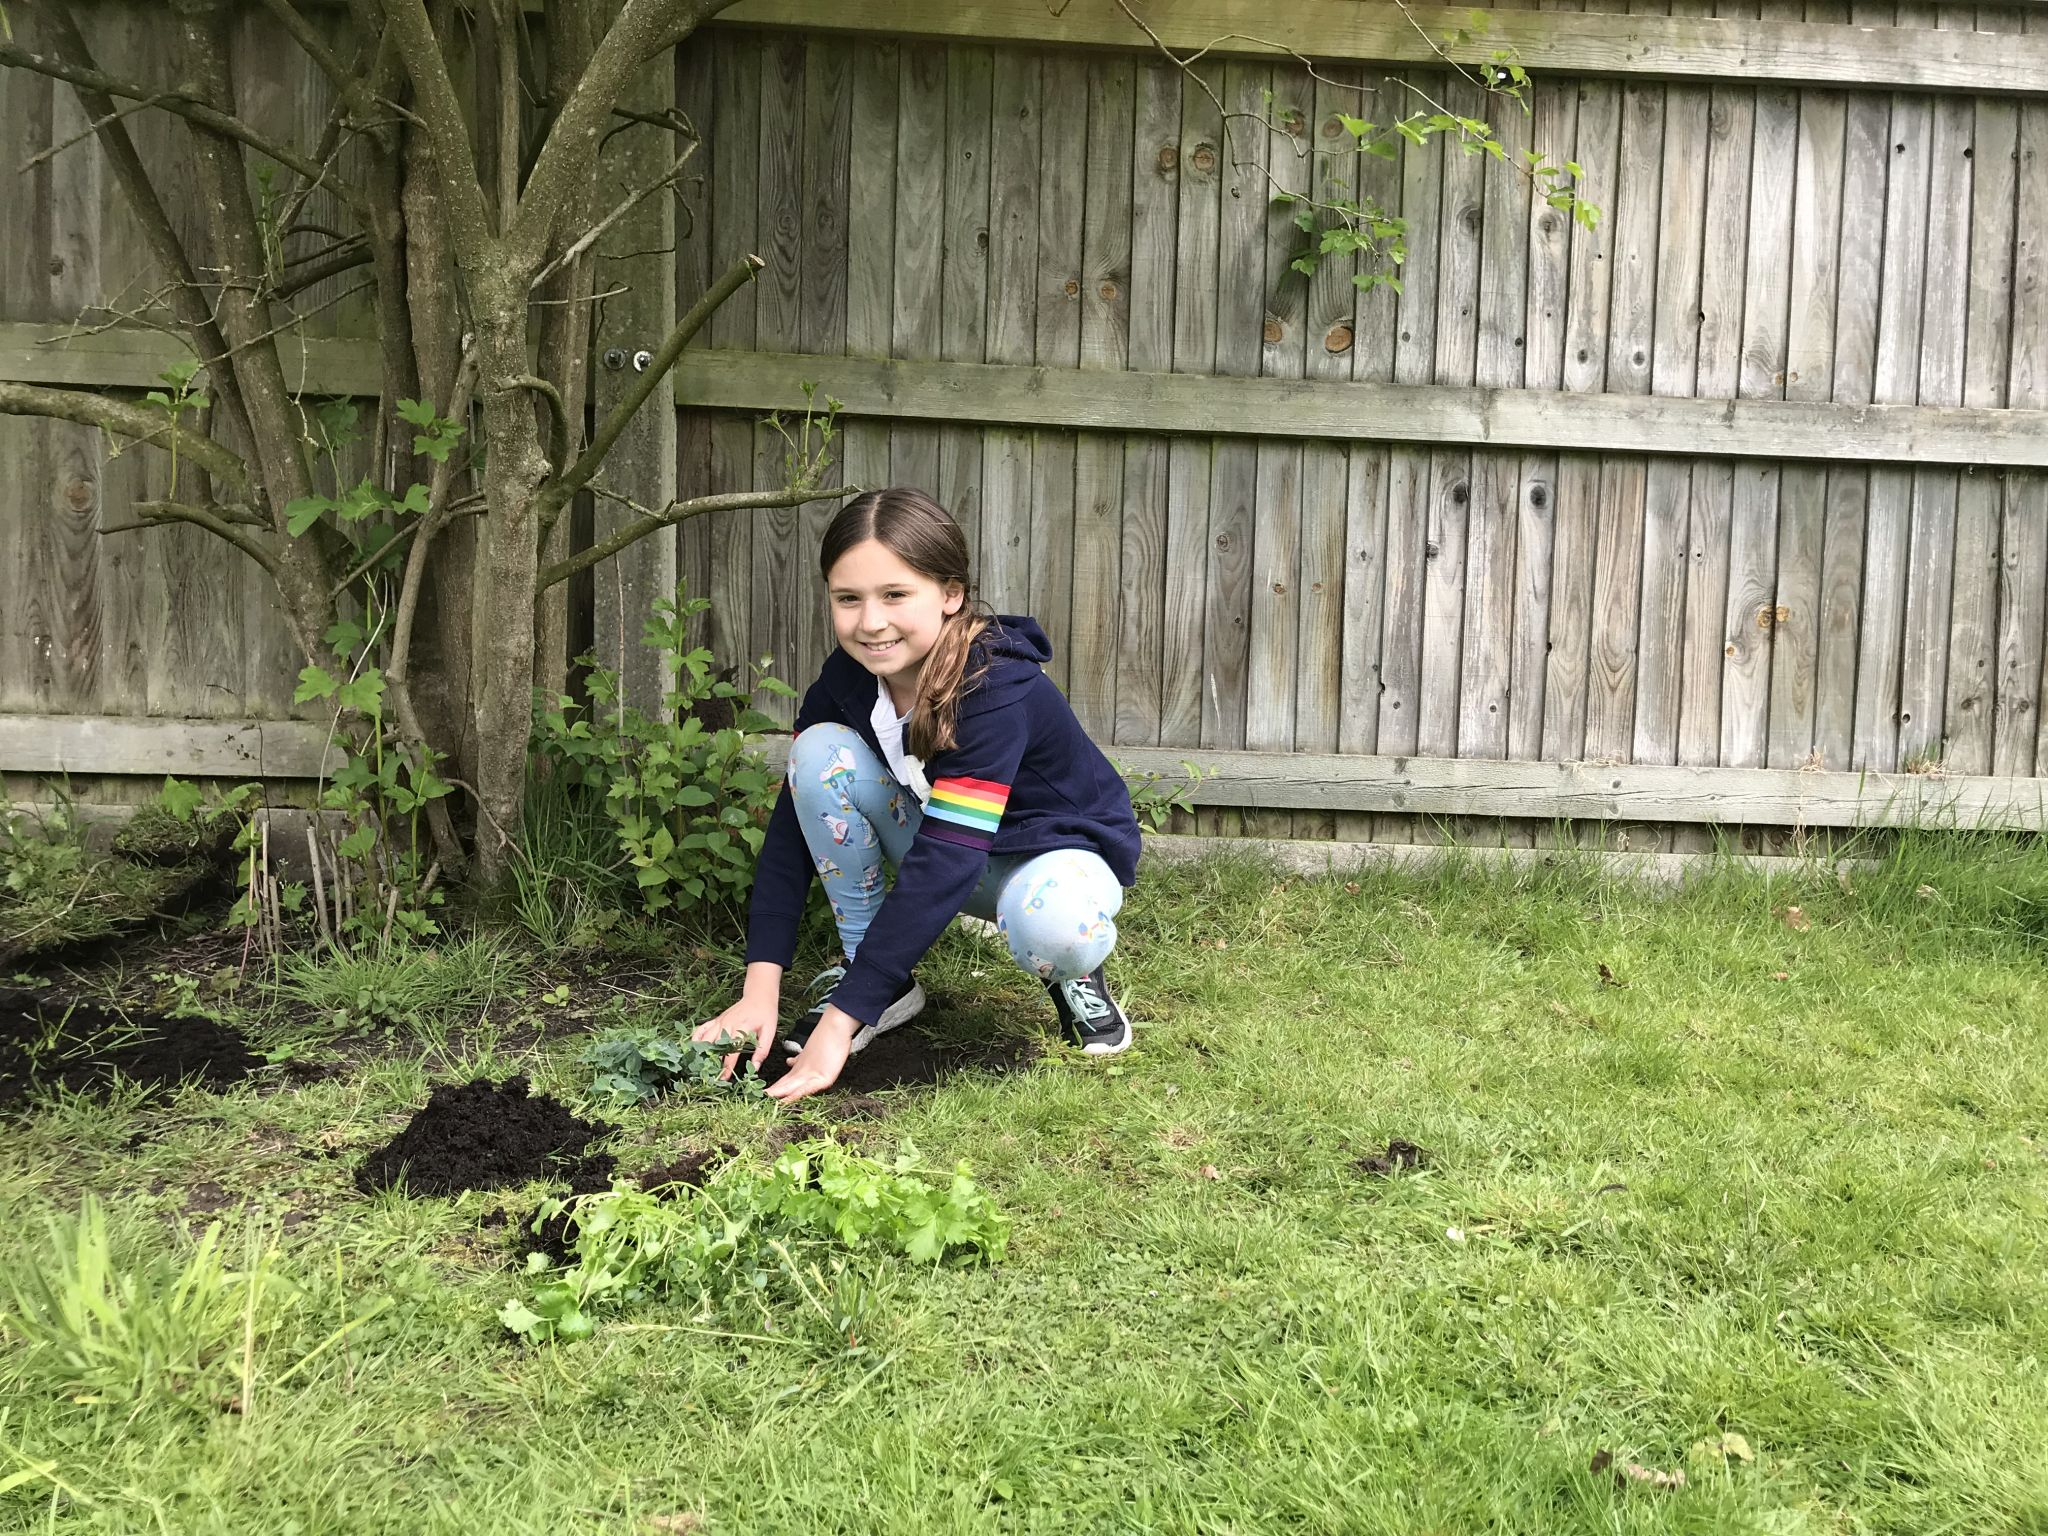 a child planting herbs in a garden